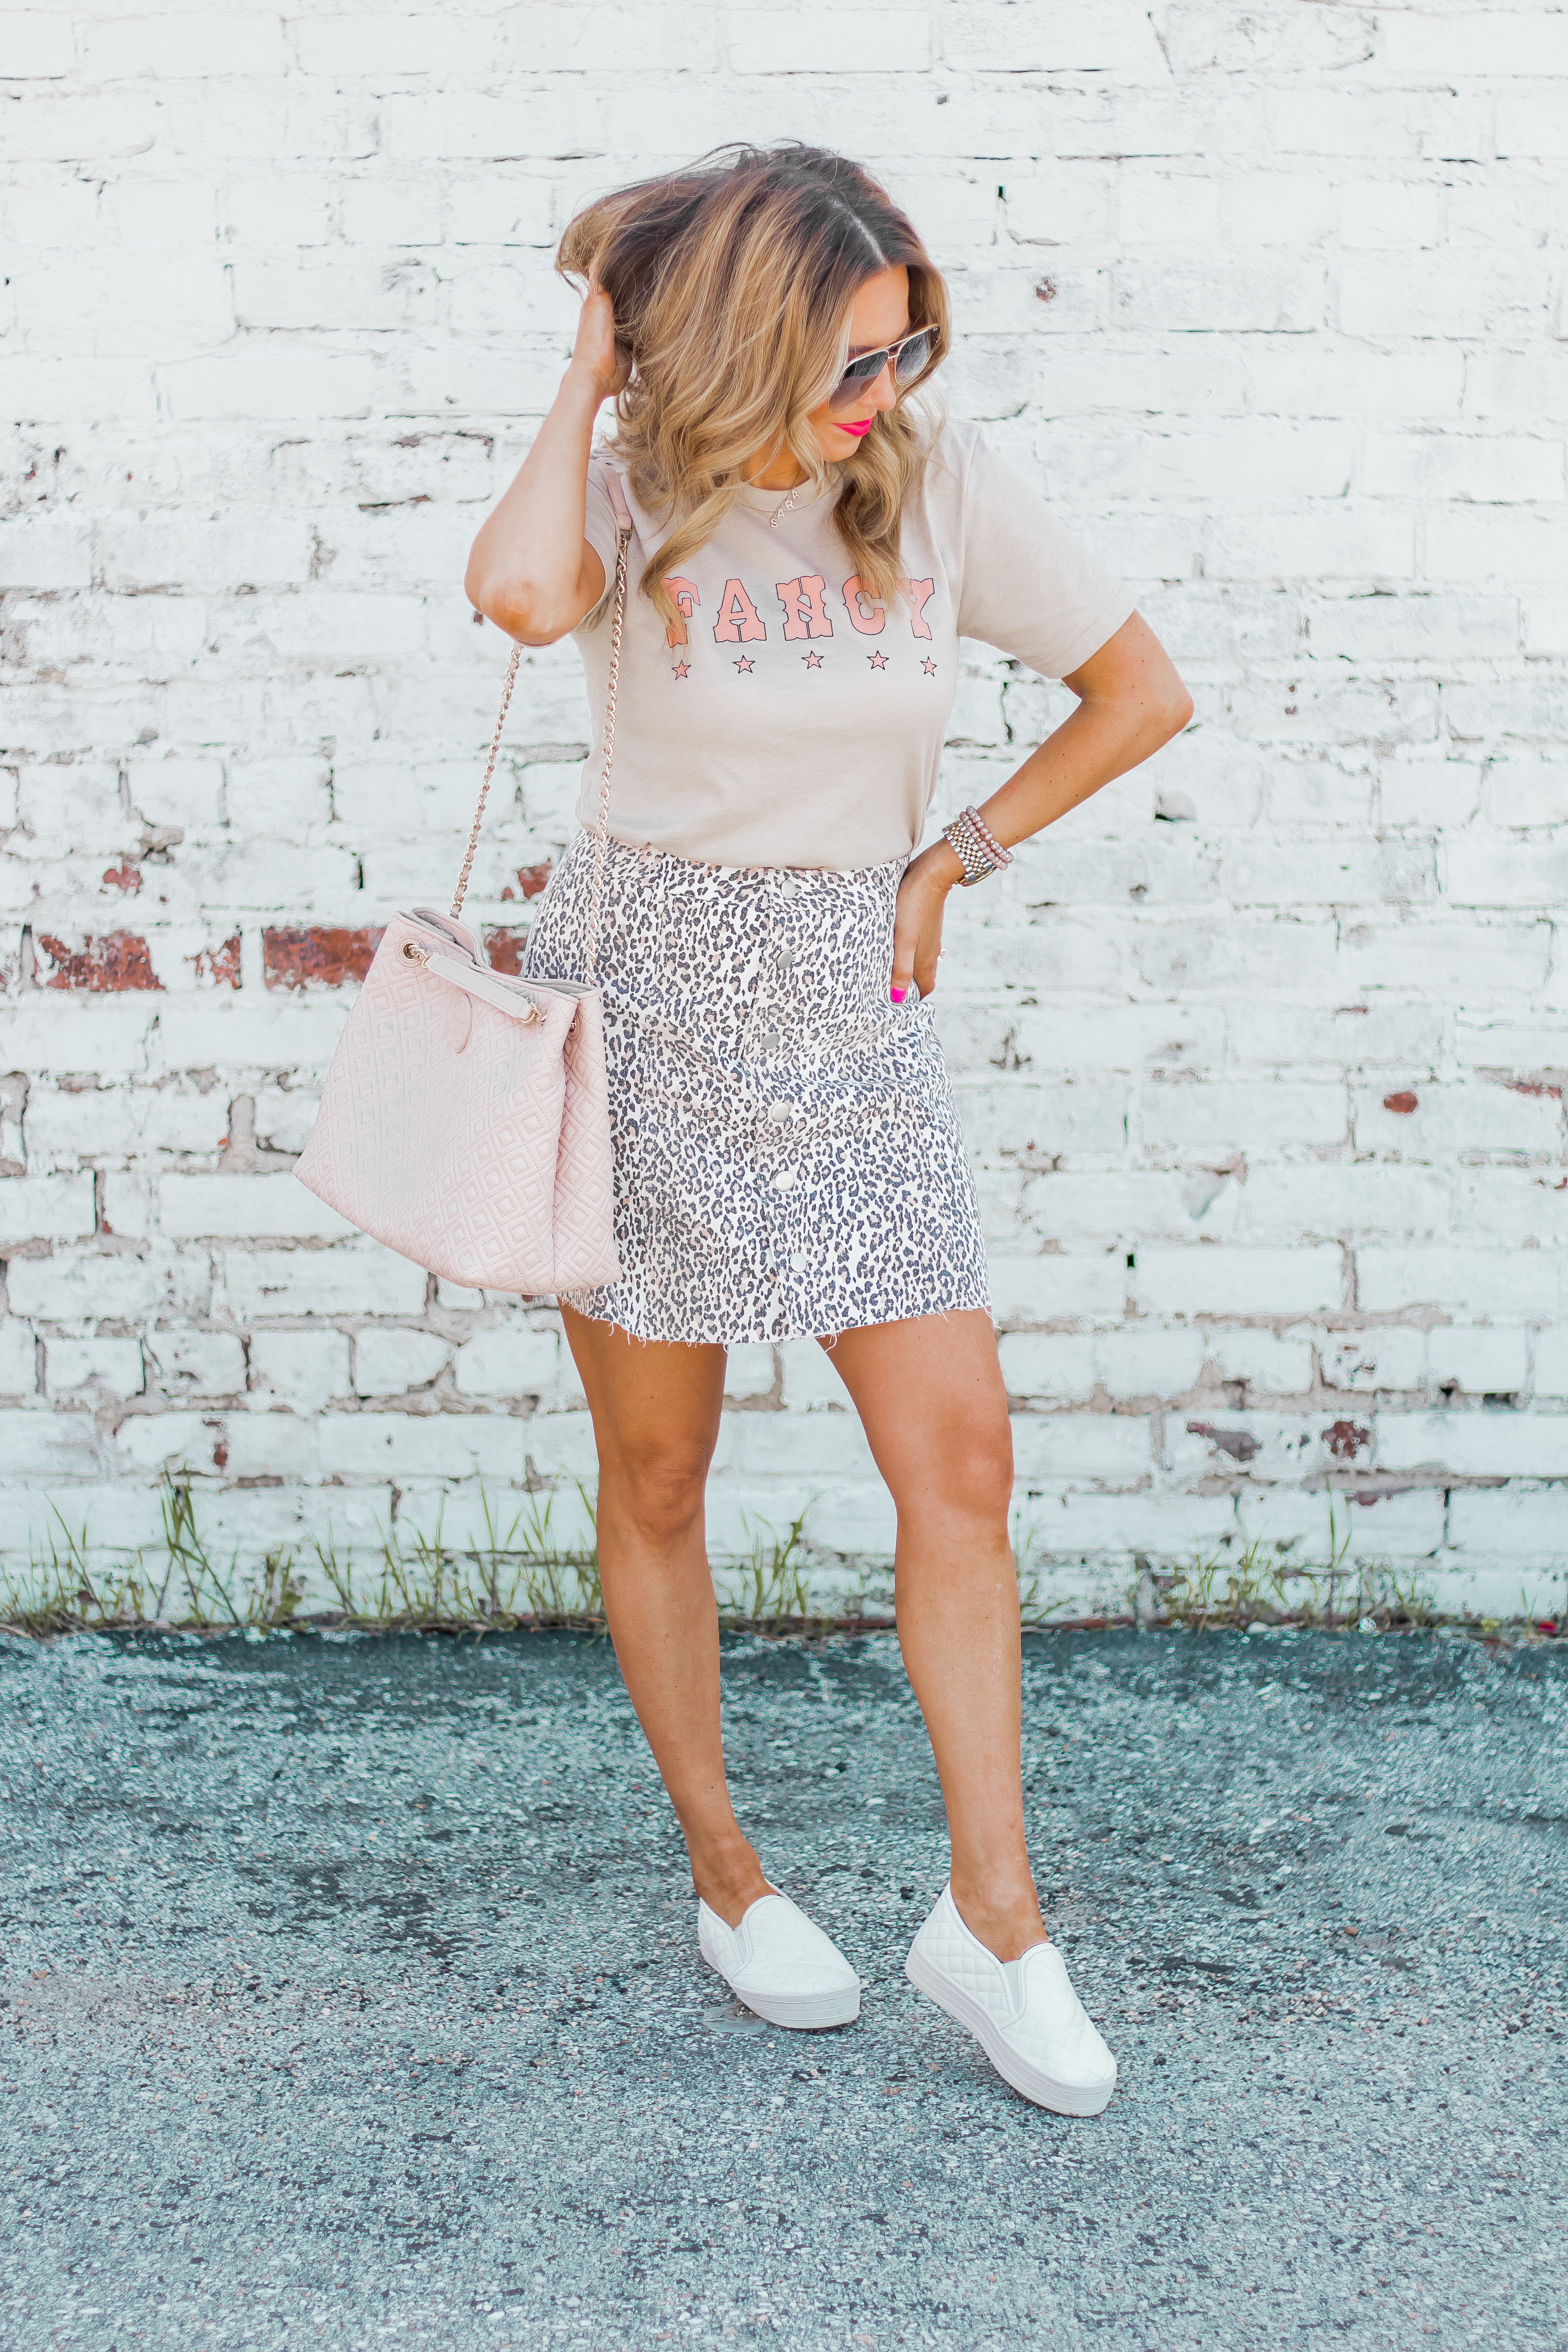 Fancy Graphic Tee-Leopard Skirt-Sugar Boutique-$250 Gift Card Giveaway-Tory Burch Fleming Bag-Quay Sunglasses-Sabby Style-Omaha Blogger-Women's Fashion-Spring Fashion-Summer Outfit-2